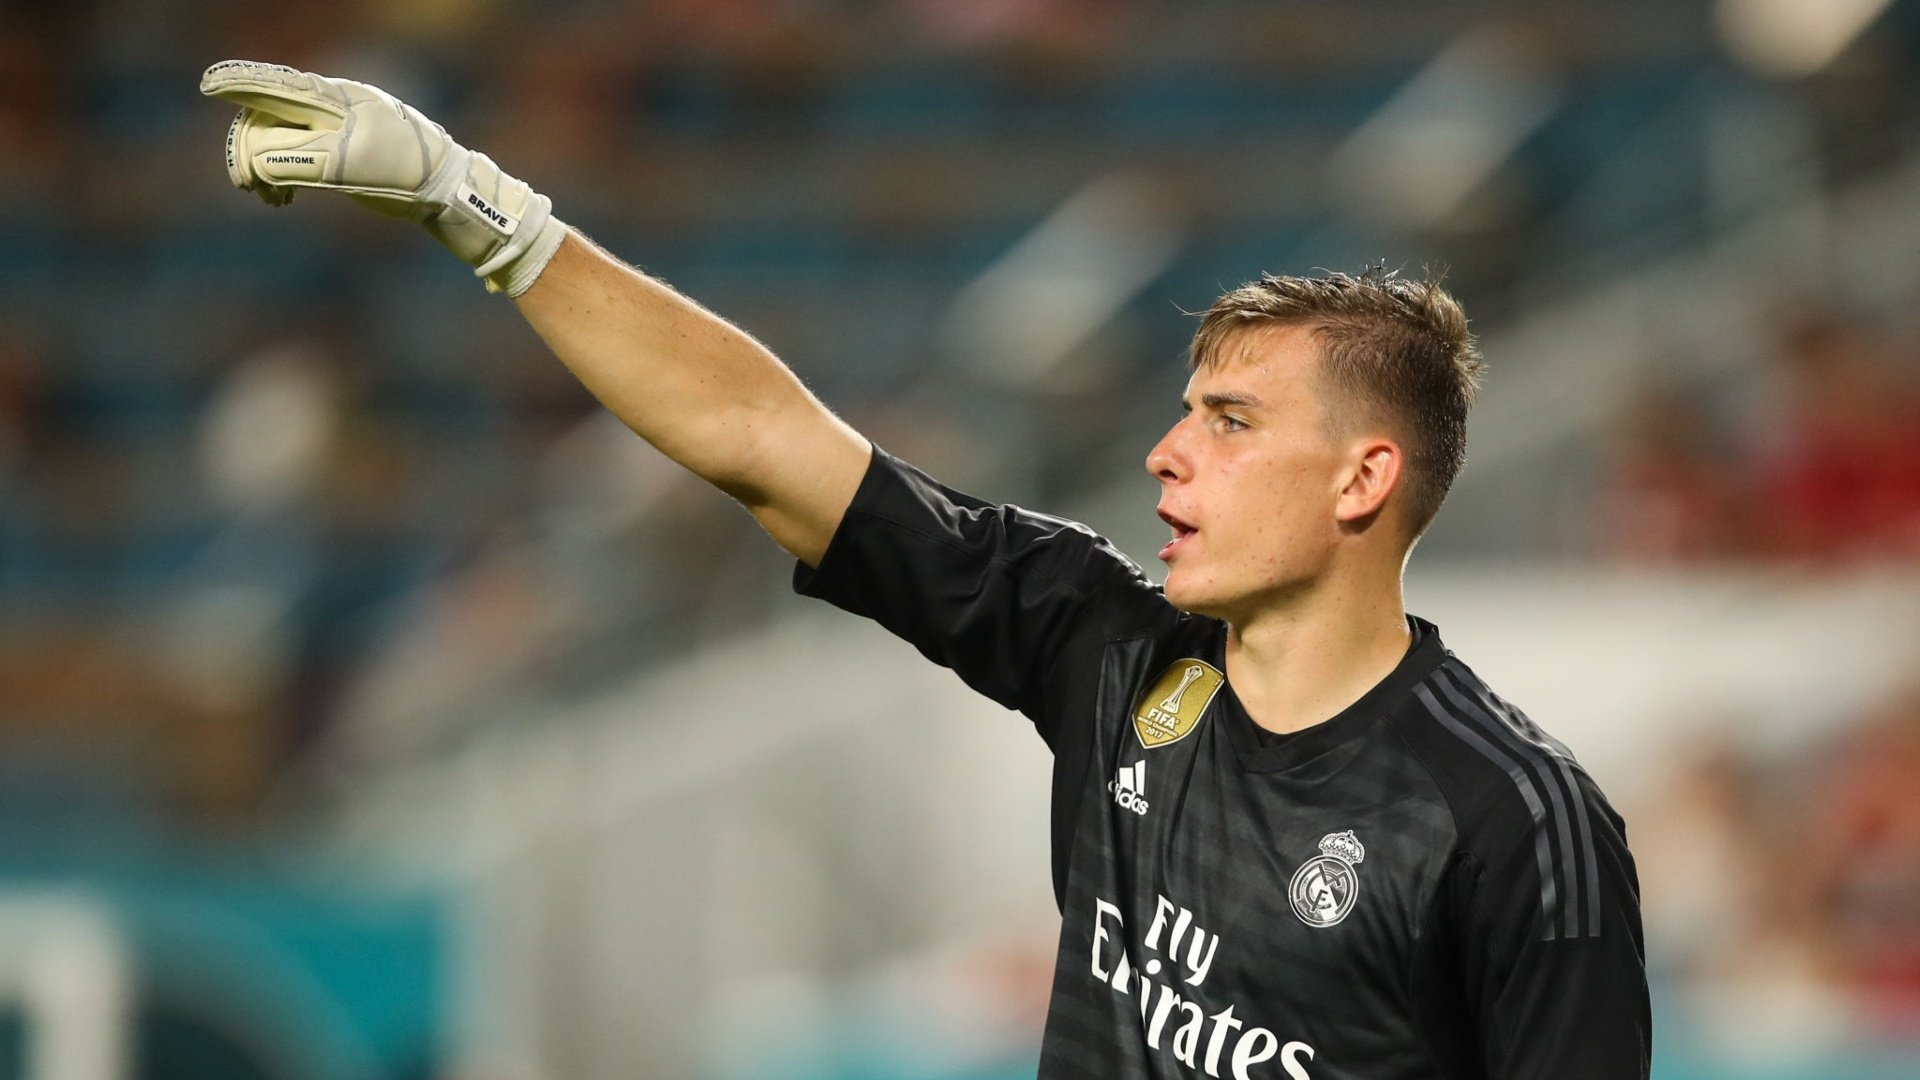 OFFICIAL: Lunin joins Valladolid on loan